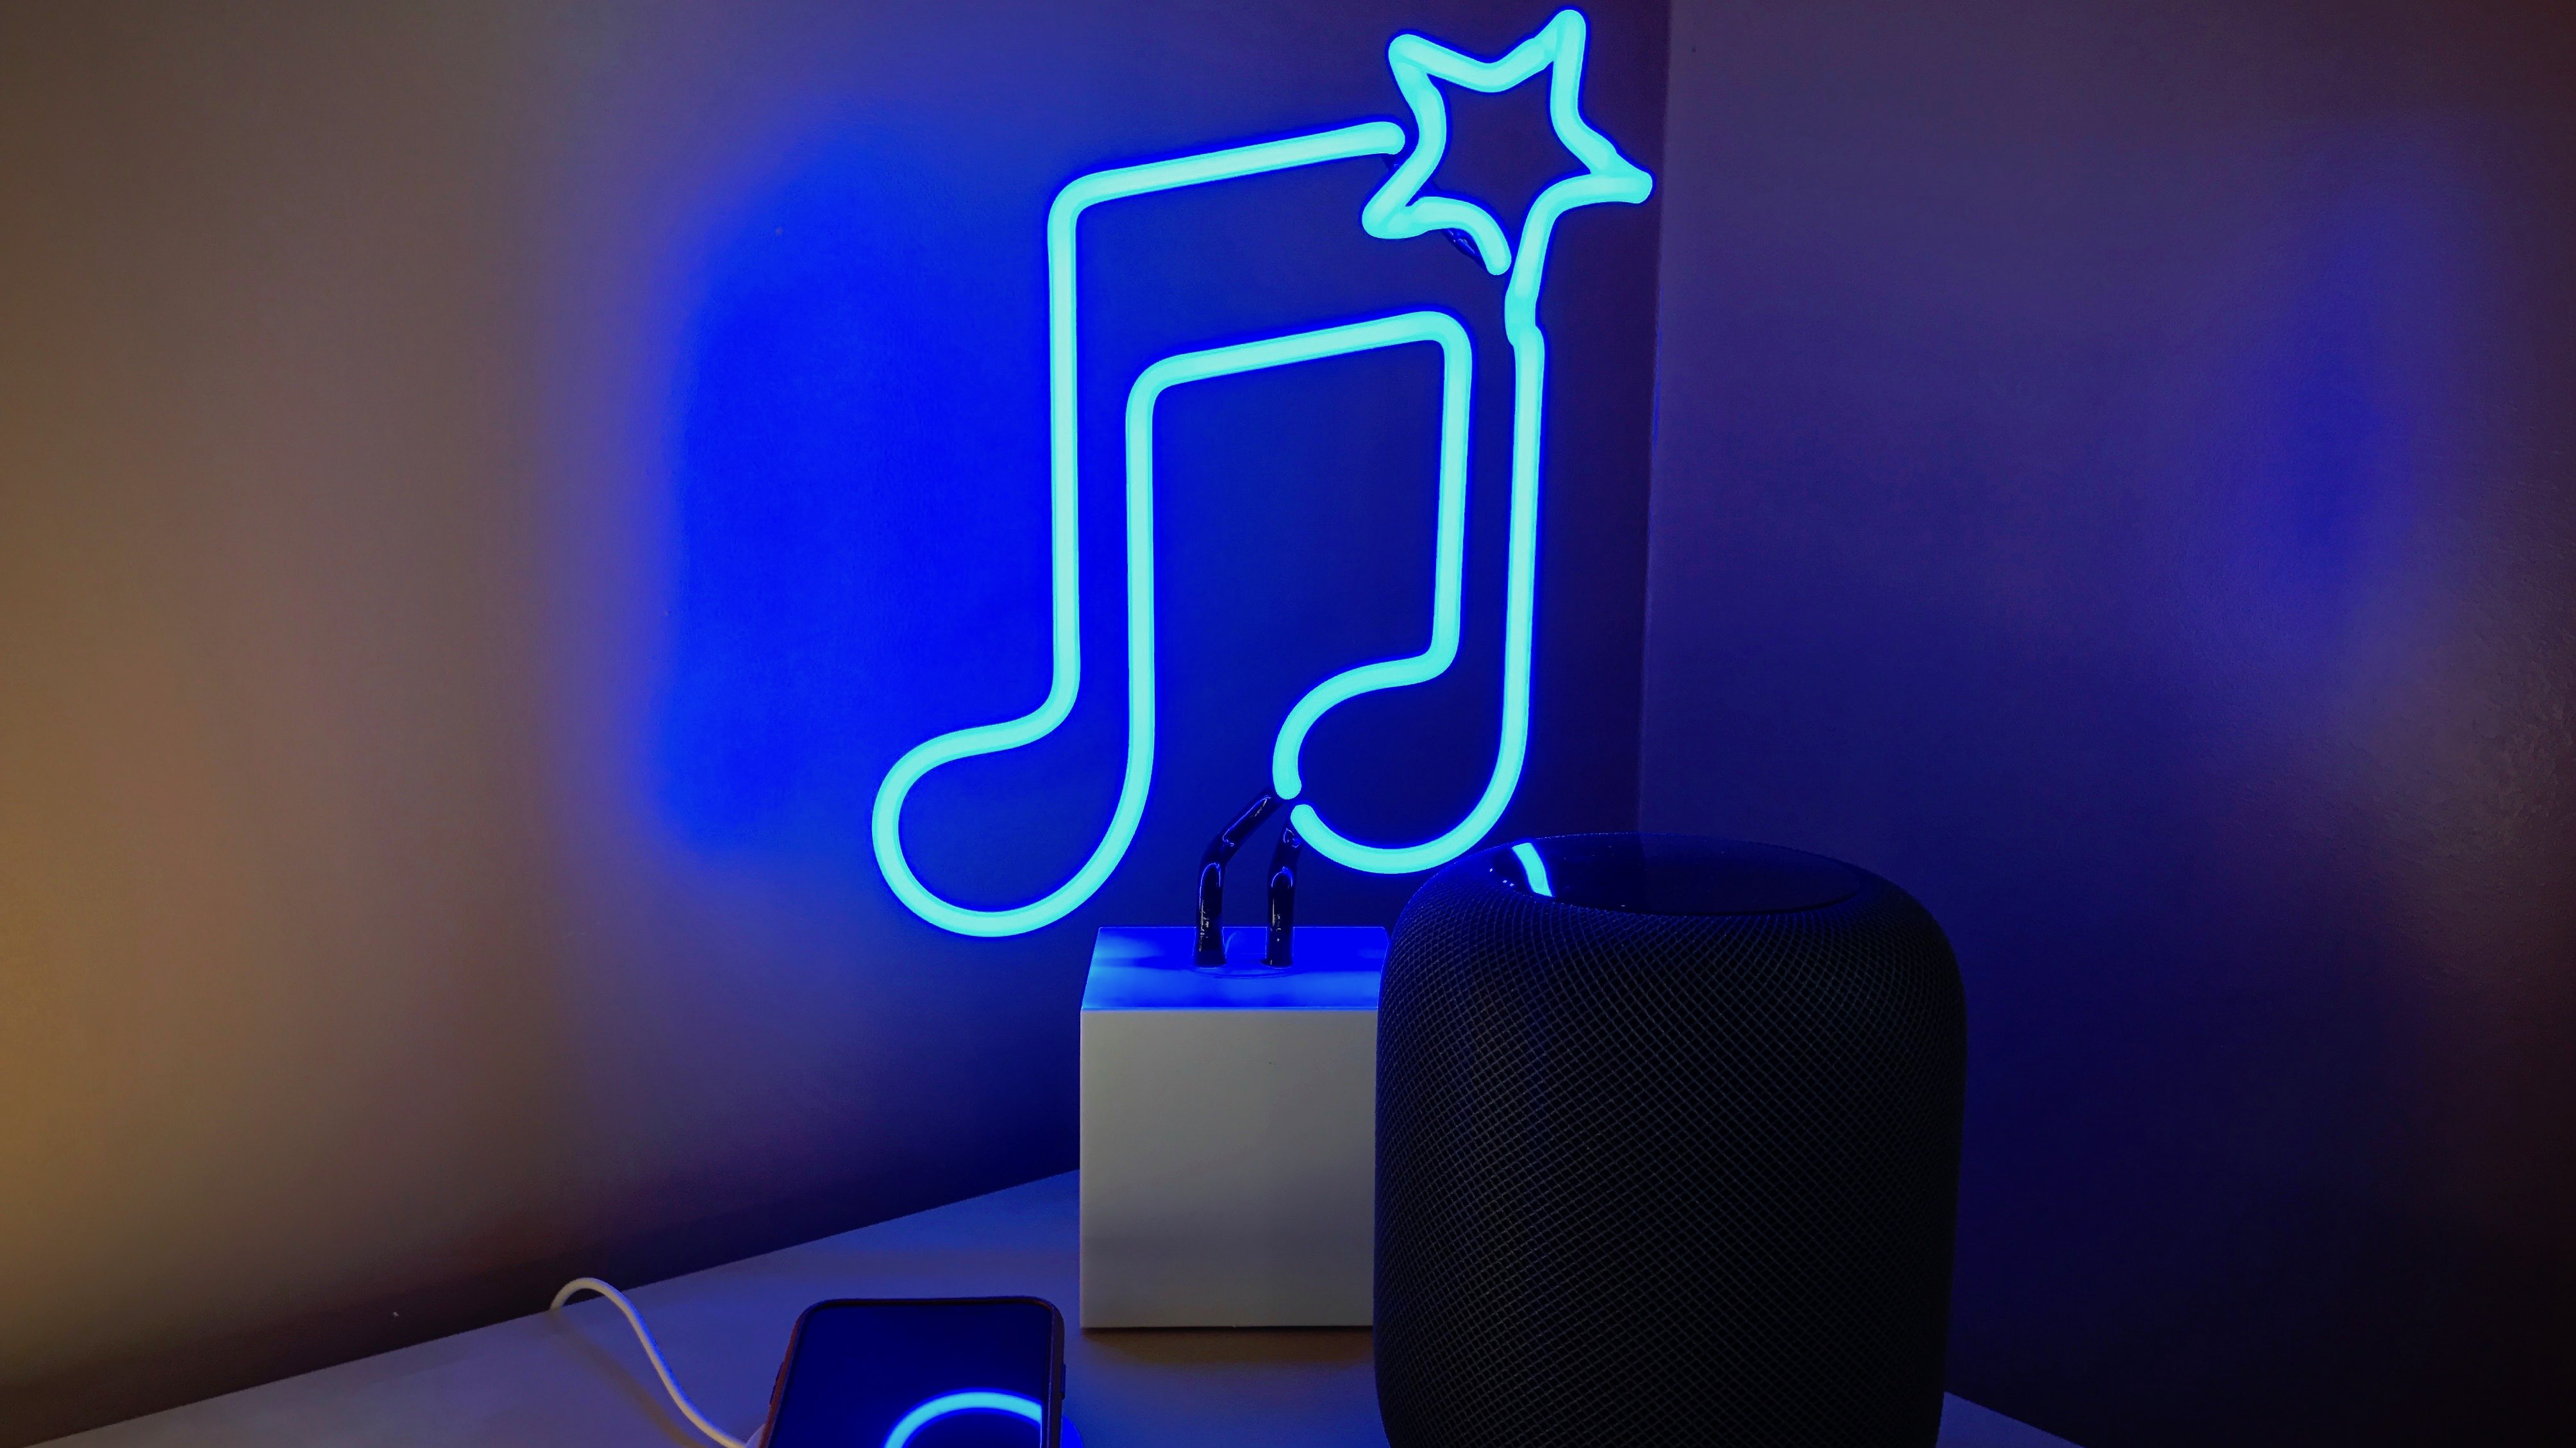 Rediscovering a love of music with HomePod, HomeKit, and neon